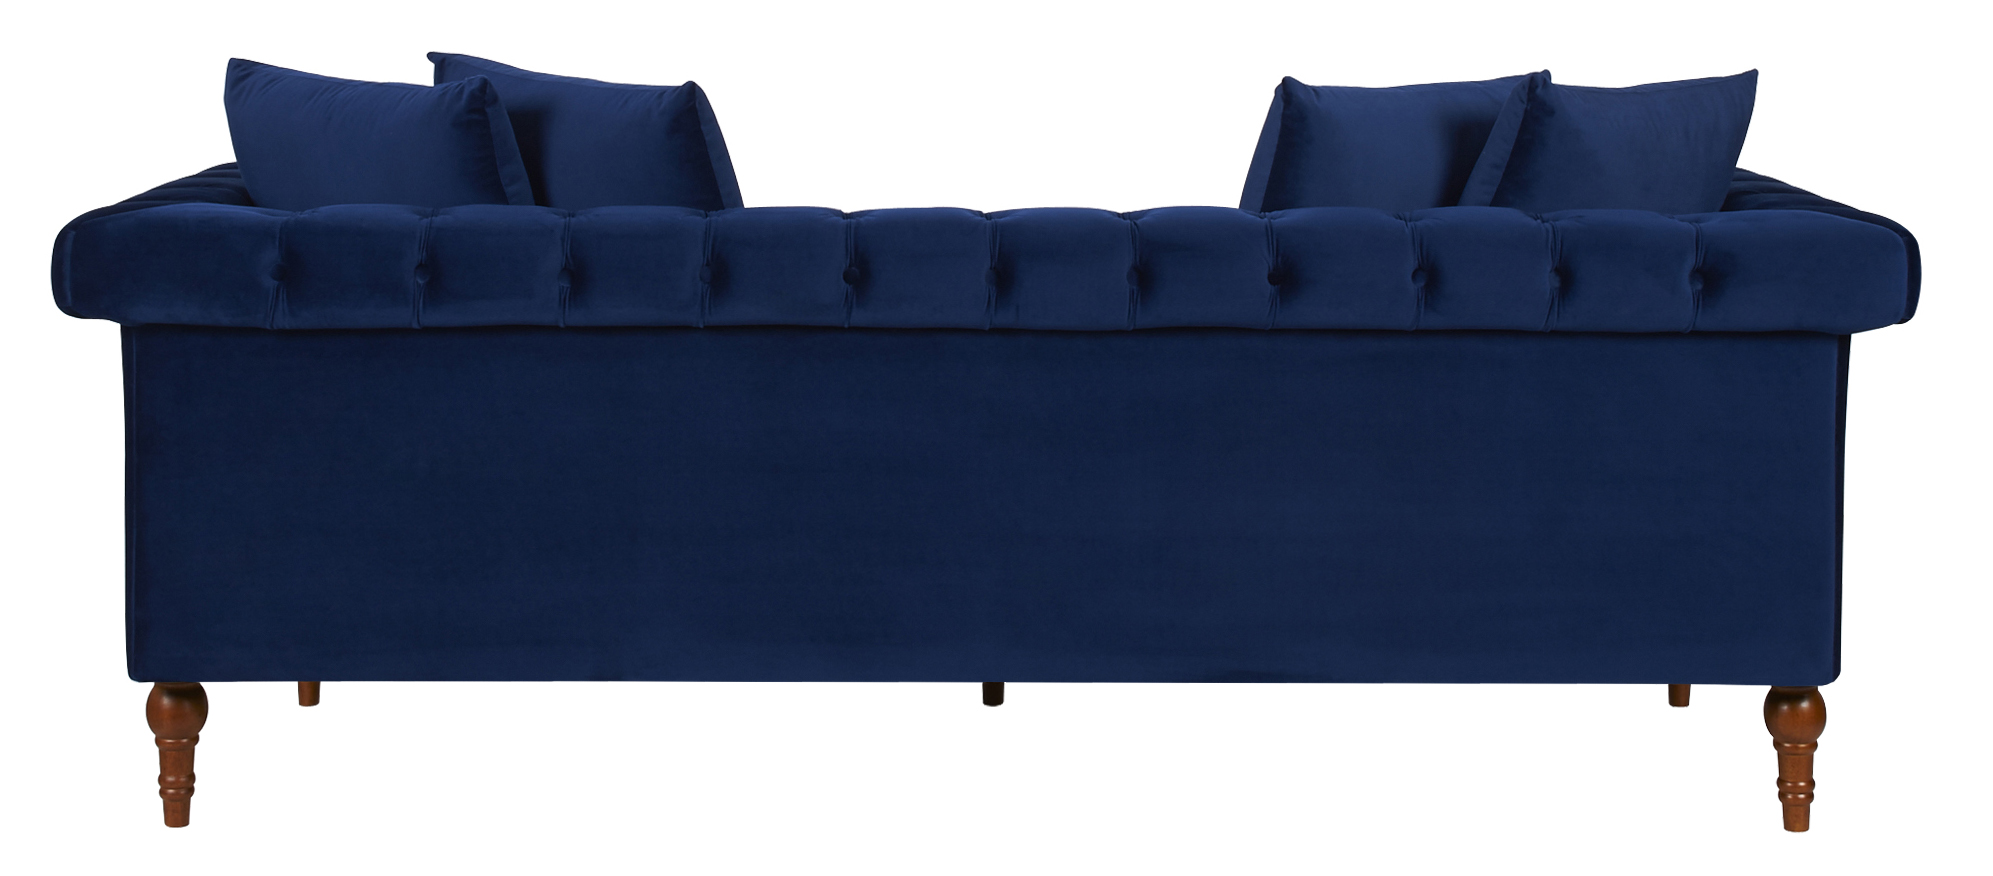 fabric chesterfield sofa bed uk doctor dc wooden  navy blue